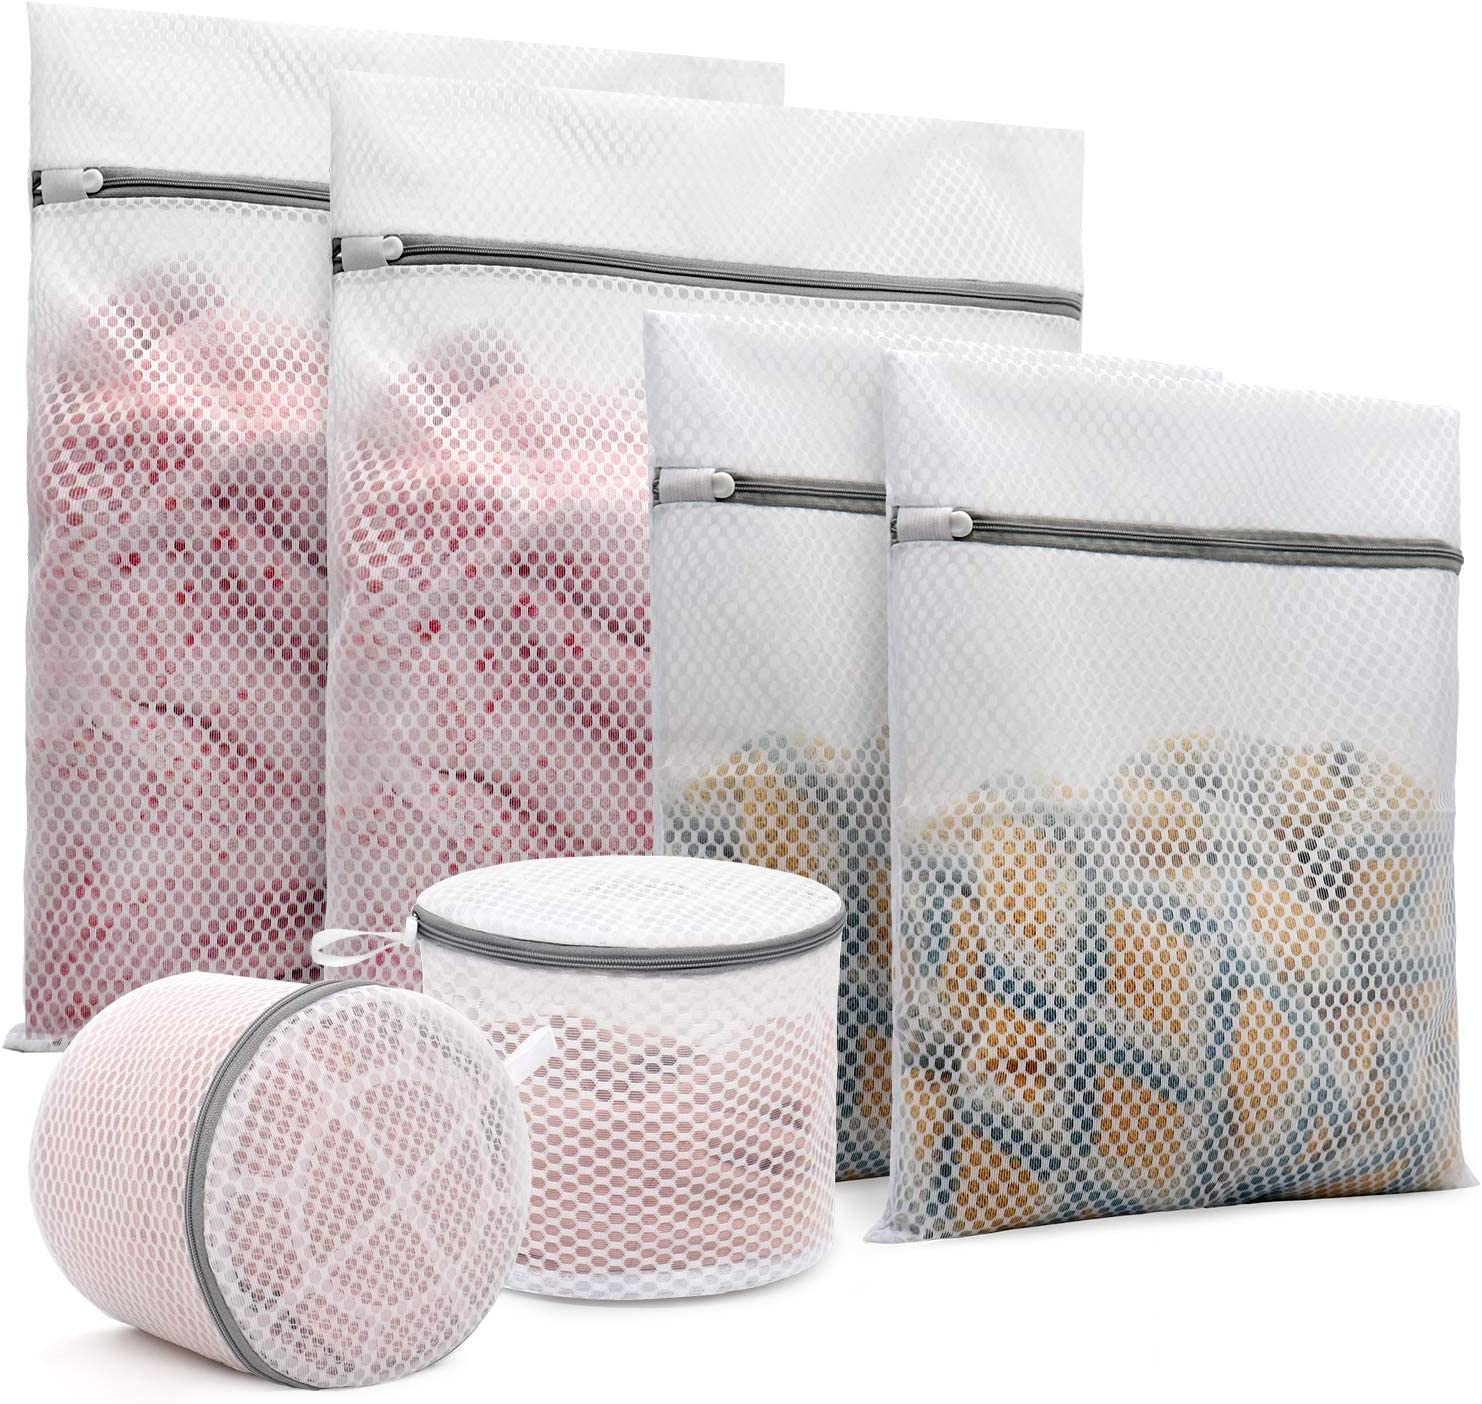 6Pcs Durable Honeycomb Mesh Laundry Bags for Delicates (2Pcs 16 x 20 Inches, 2Pcs 12 x 16 Inches, 2Pcs 6 x 7 Inches)